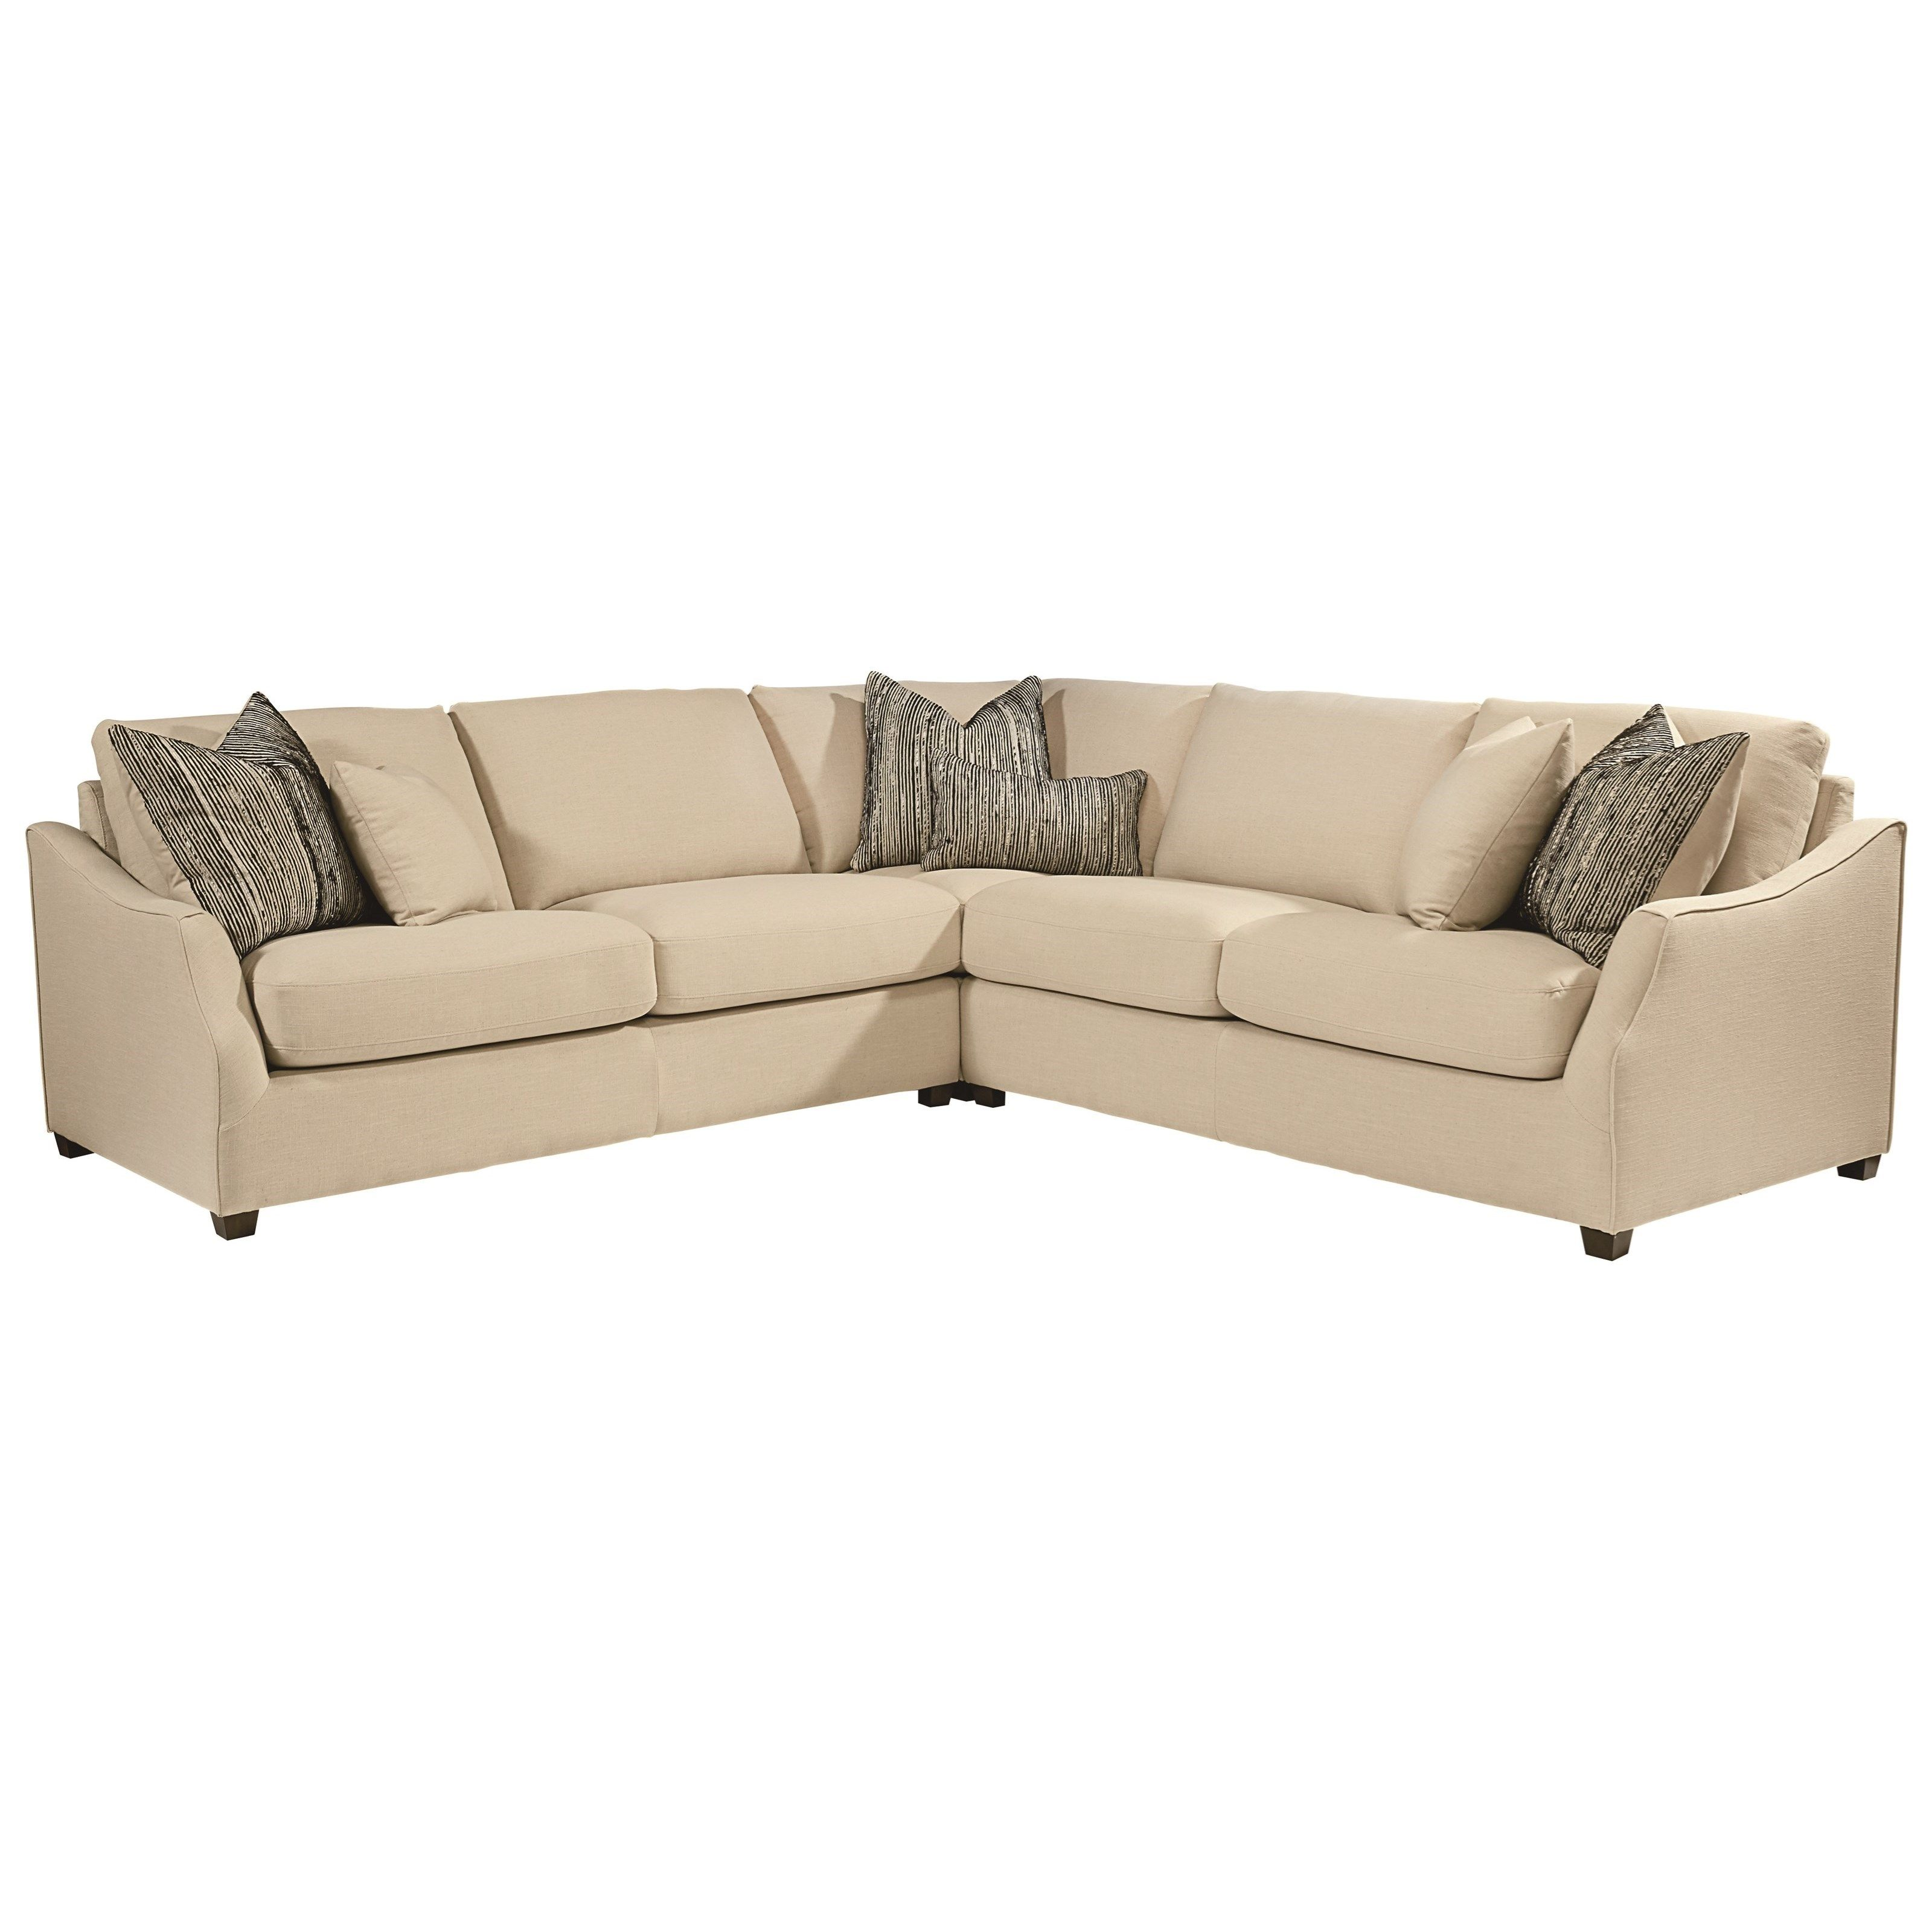 sofas sectional lsg two mn piece sofa hereo elegant collections district